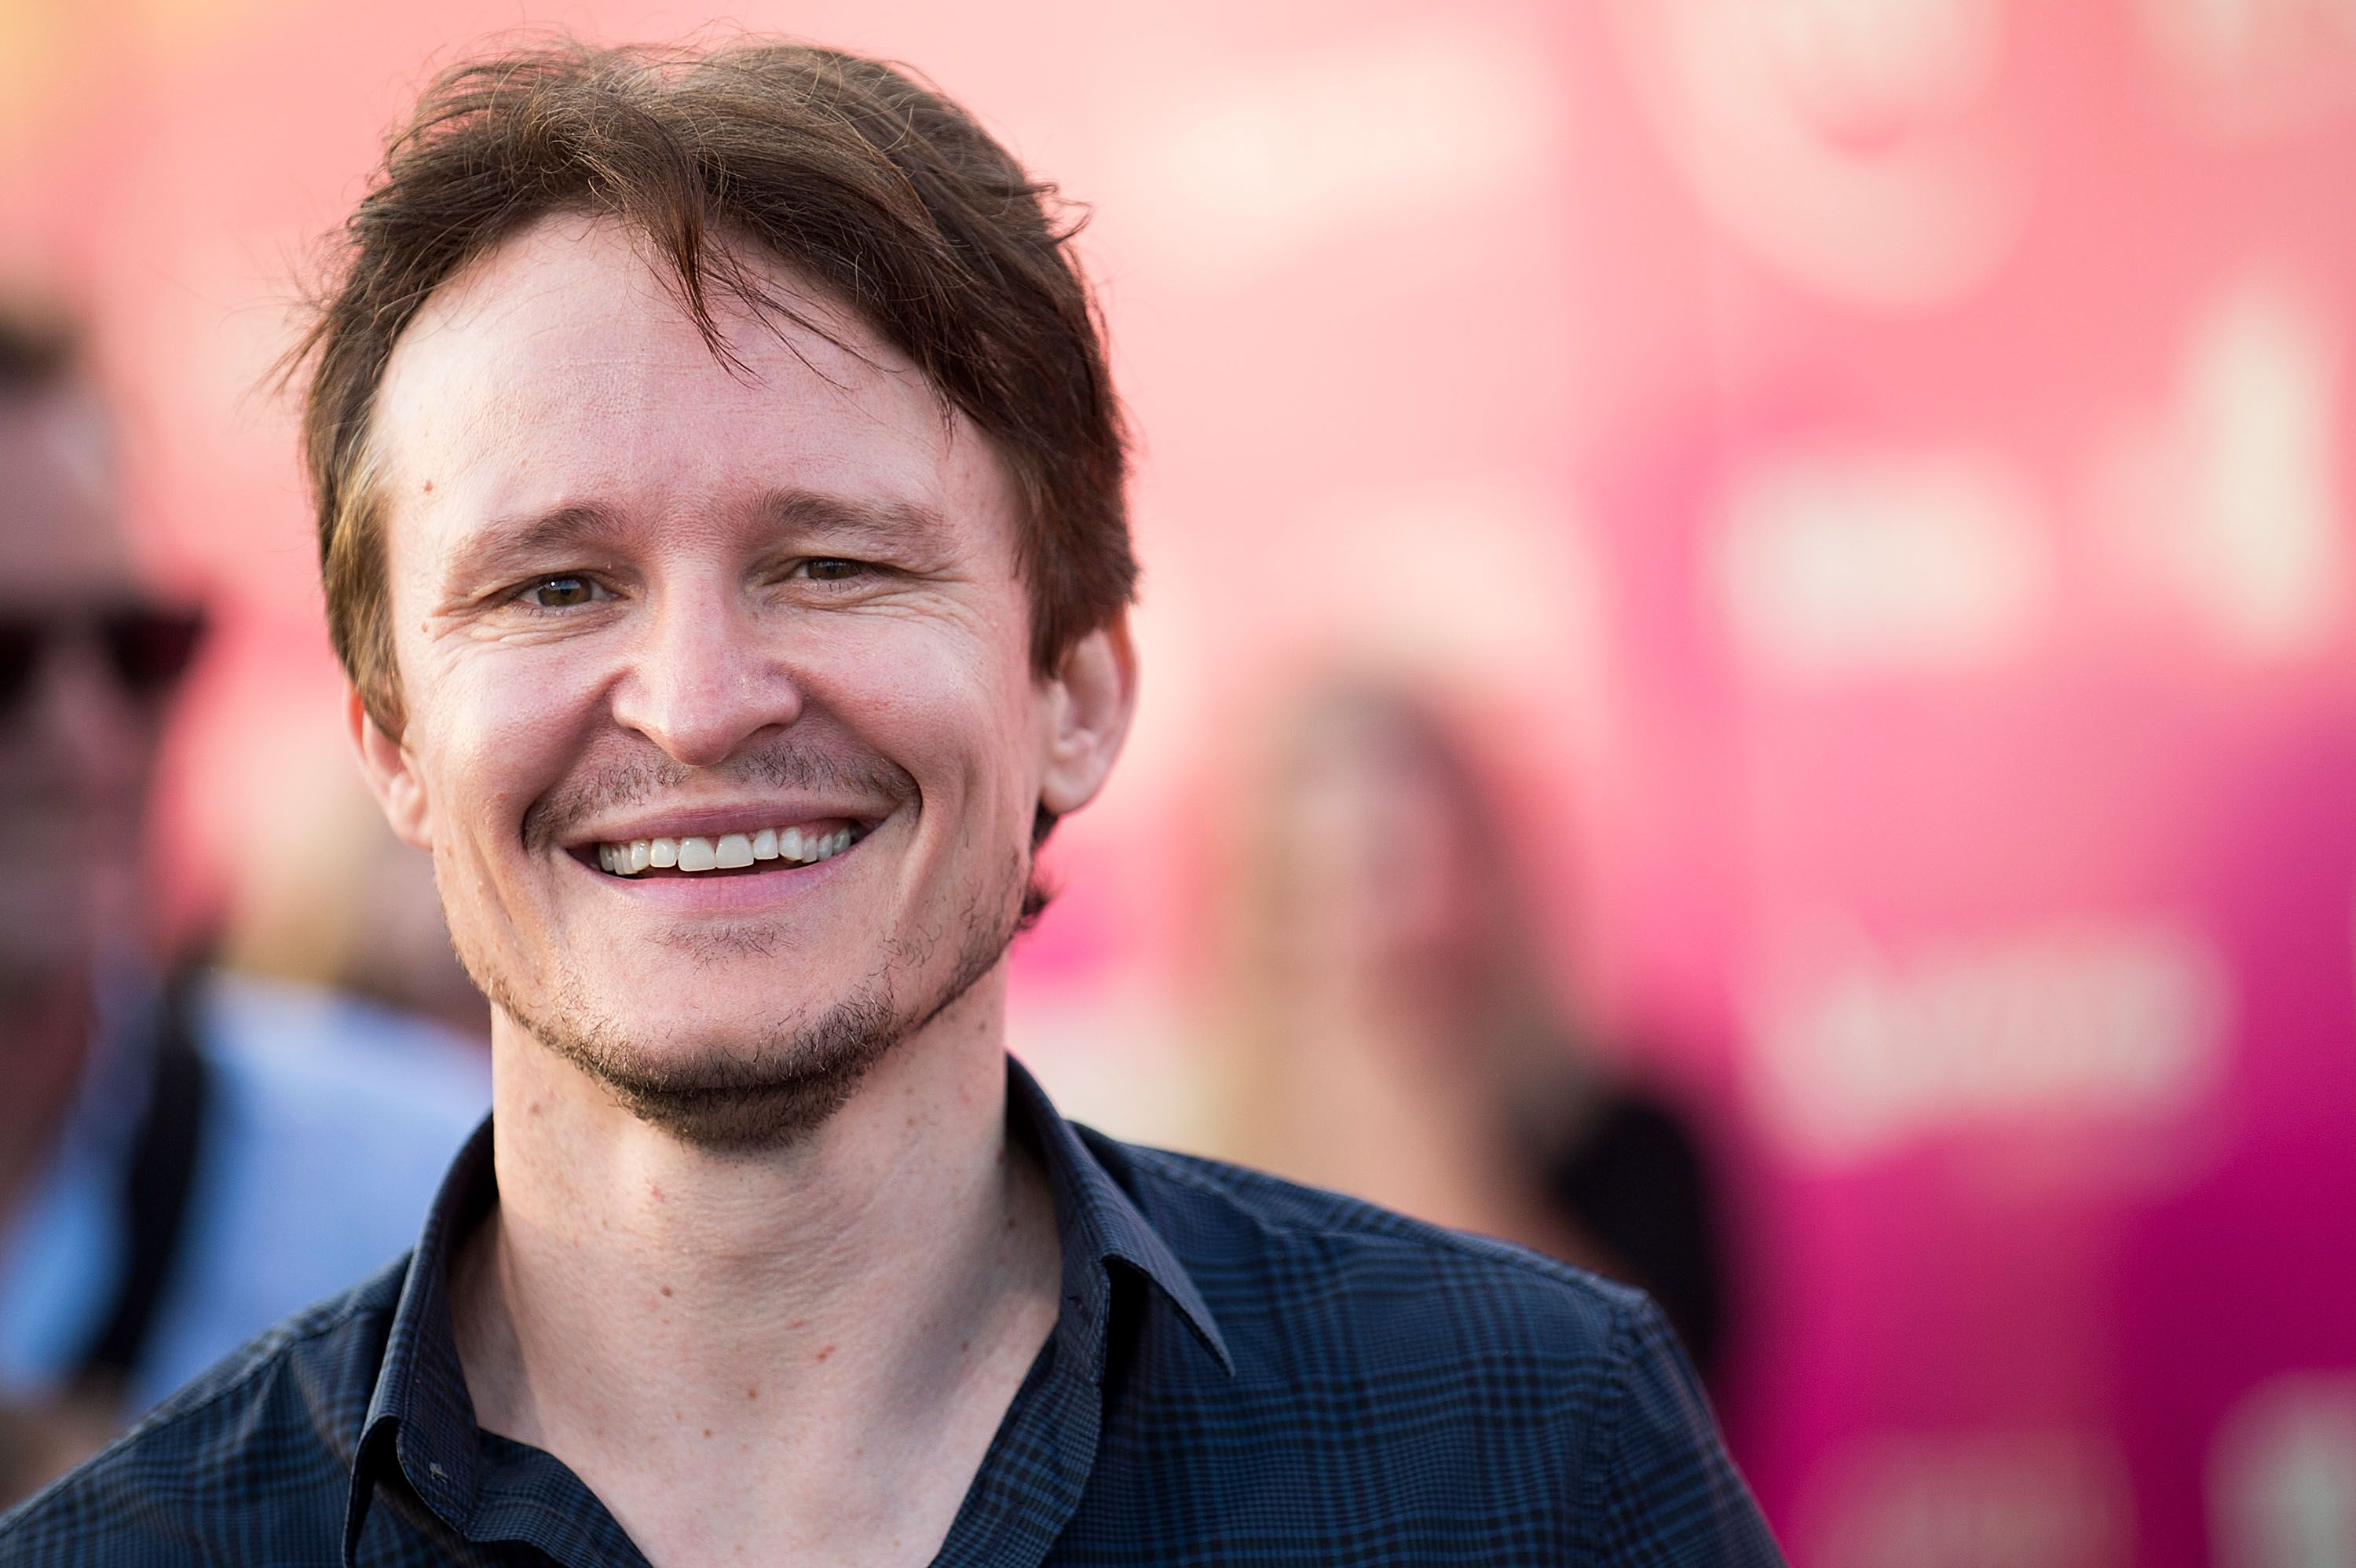 damon-herriman-arrives-at-tropfest-at-centennial-park-on-news-photo-510187422-1535533578 'ONCE UPON A TIME IN HOLLYWOOD': TARANTINO YA TIENE A SU CHARLES MANSON